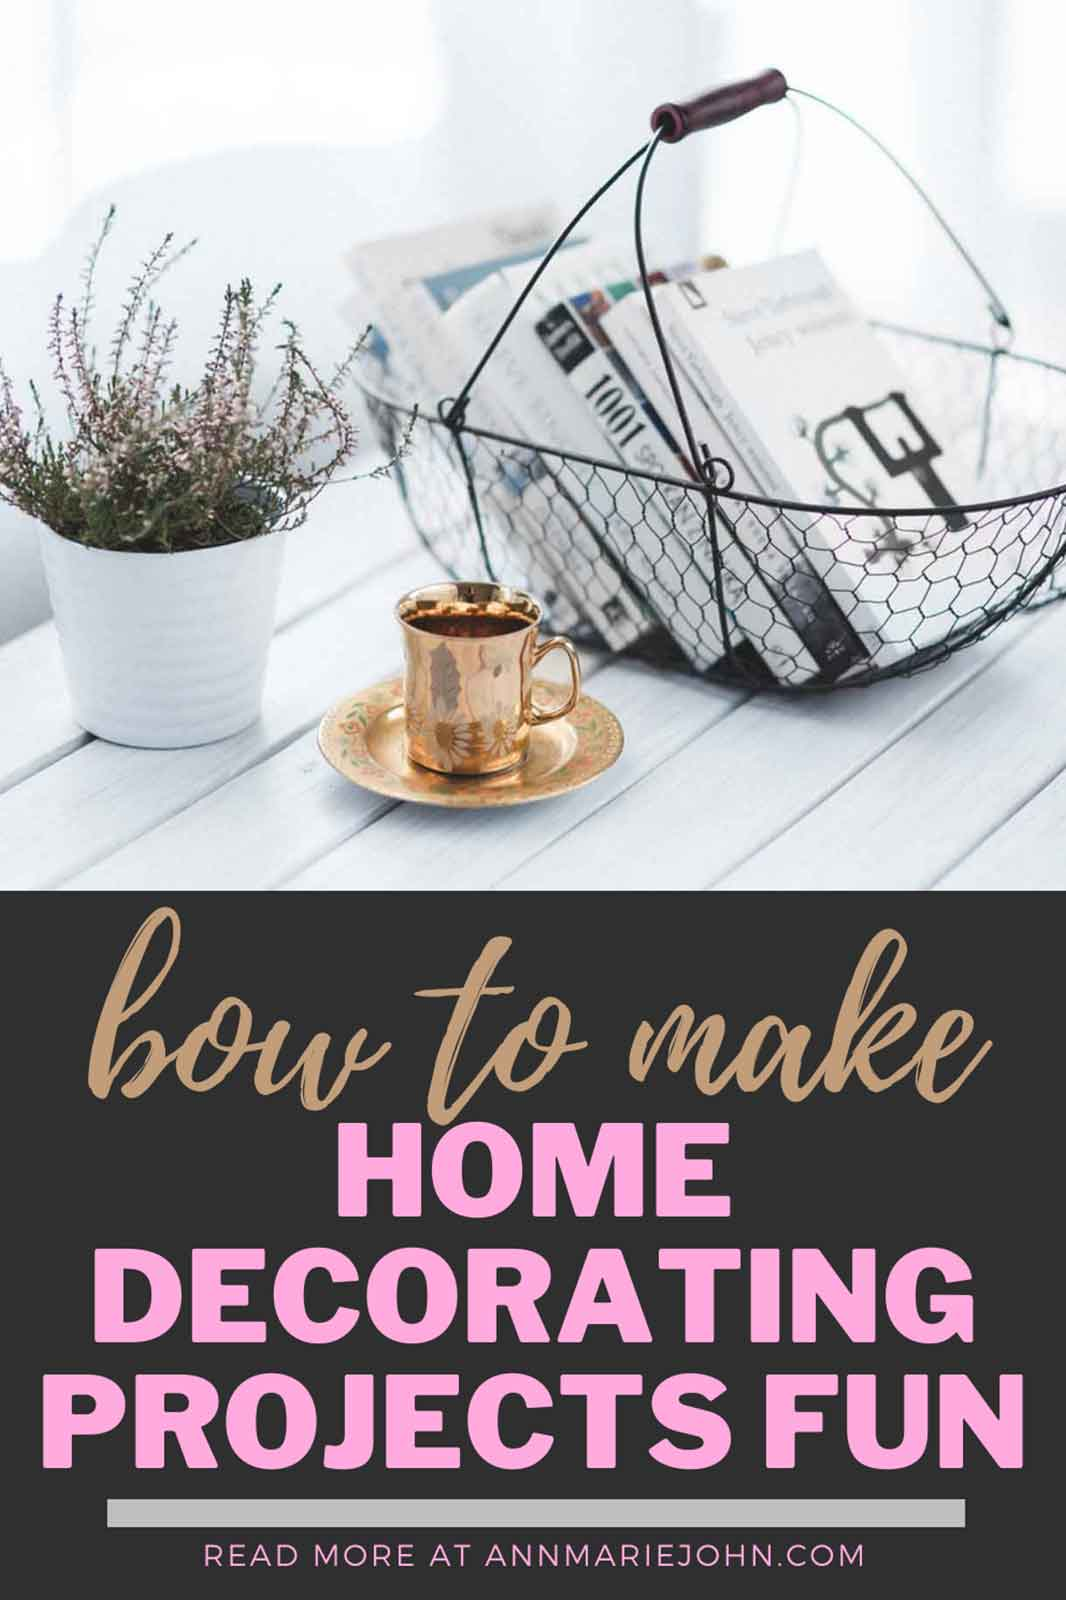 All the Ways to Make Family Home Decorating Projects Fun